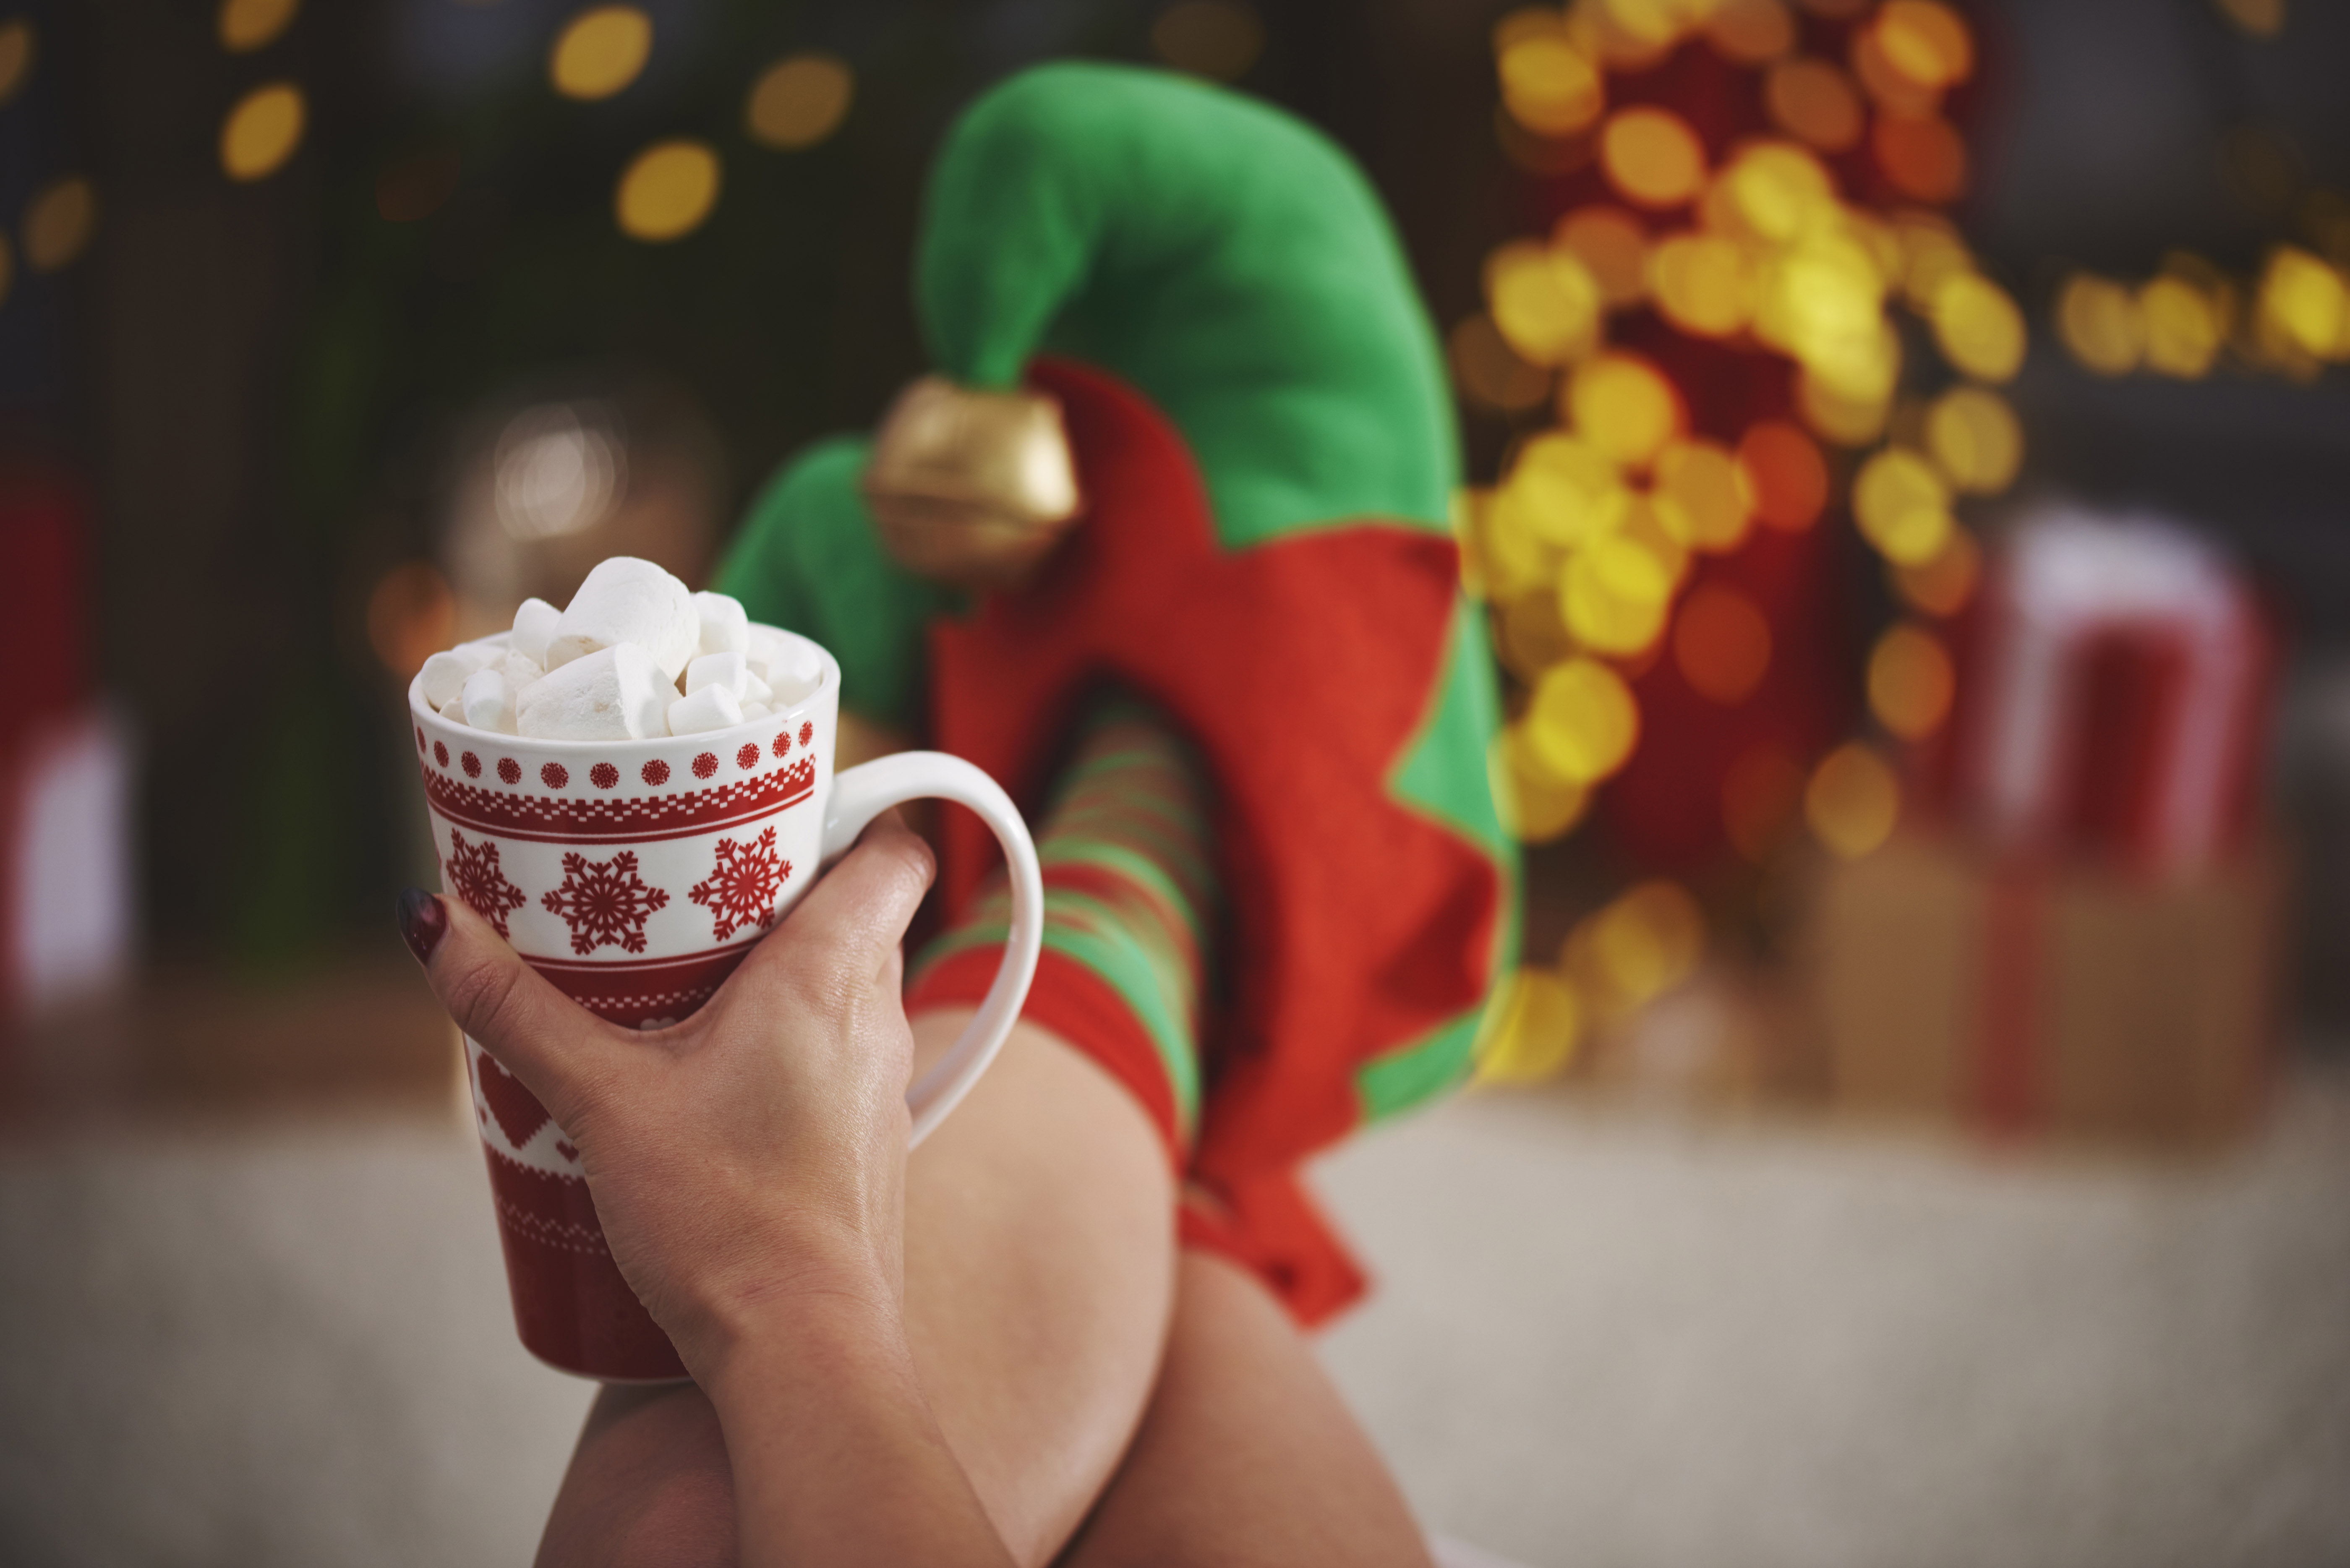 holding a mug of hot chocolate wearing elf slippers